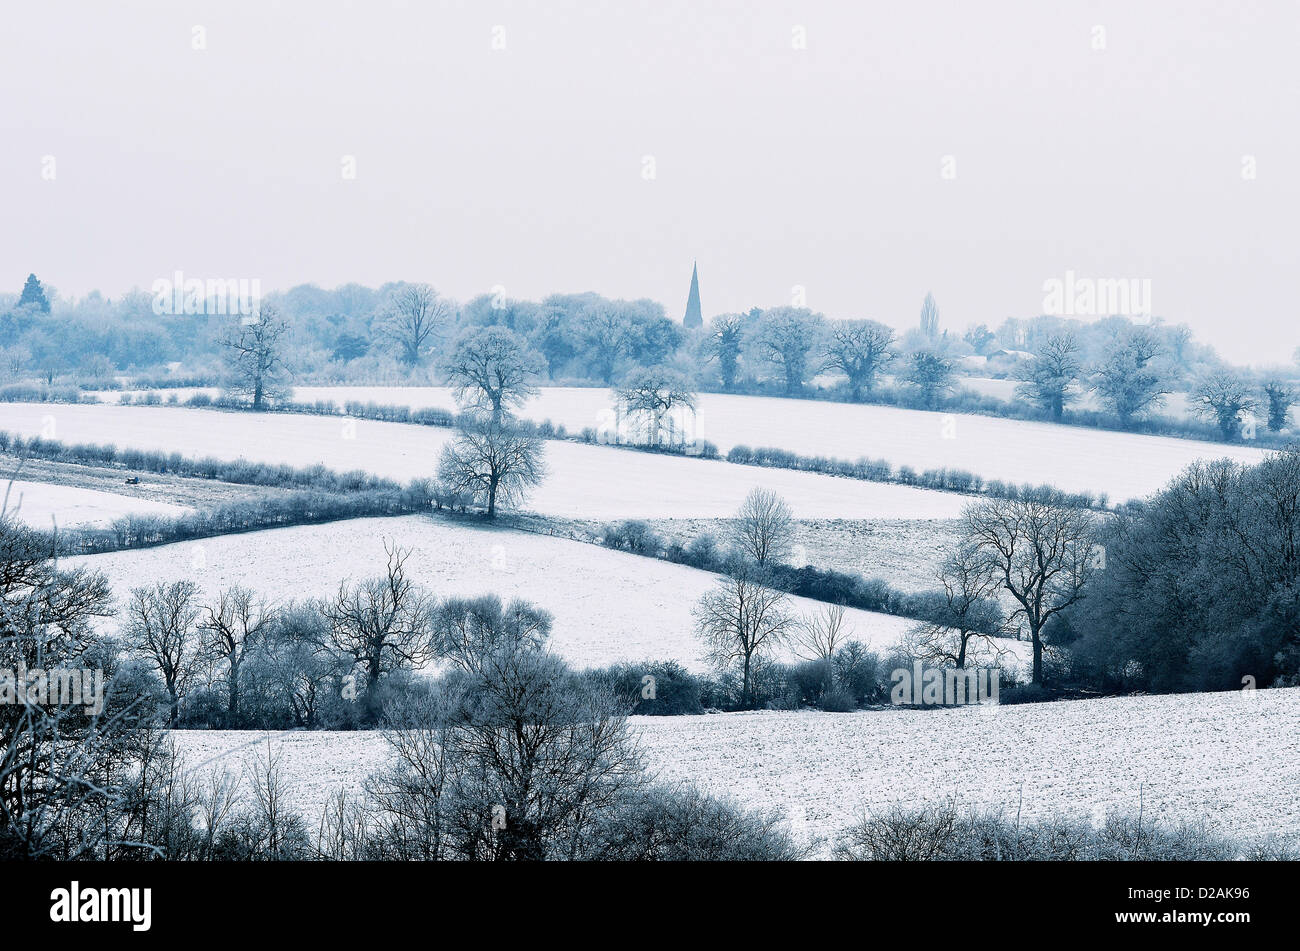 Icy fields near Thorpe Malsor, Northamptonshire, UK is braced for more snow later today, 18th January 2013. Photo - Stock Image